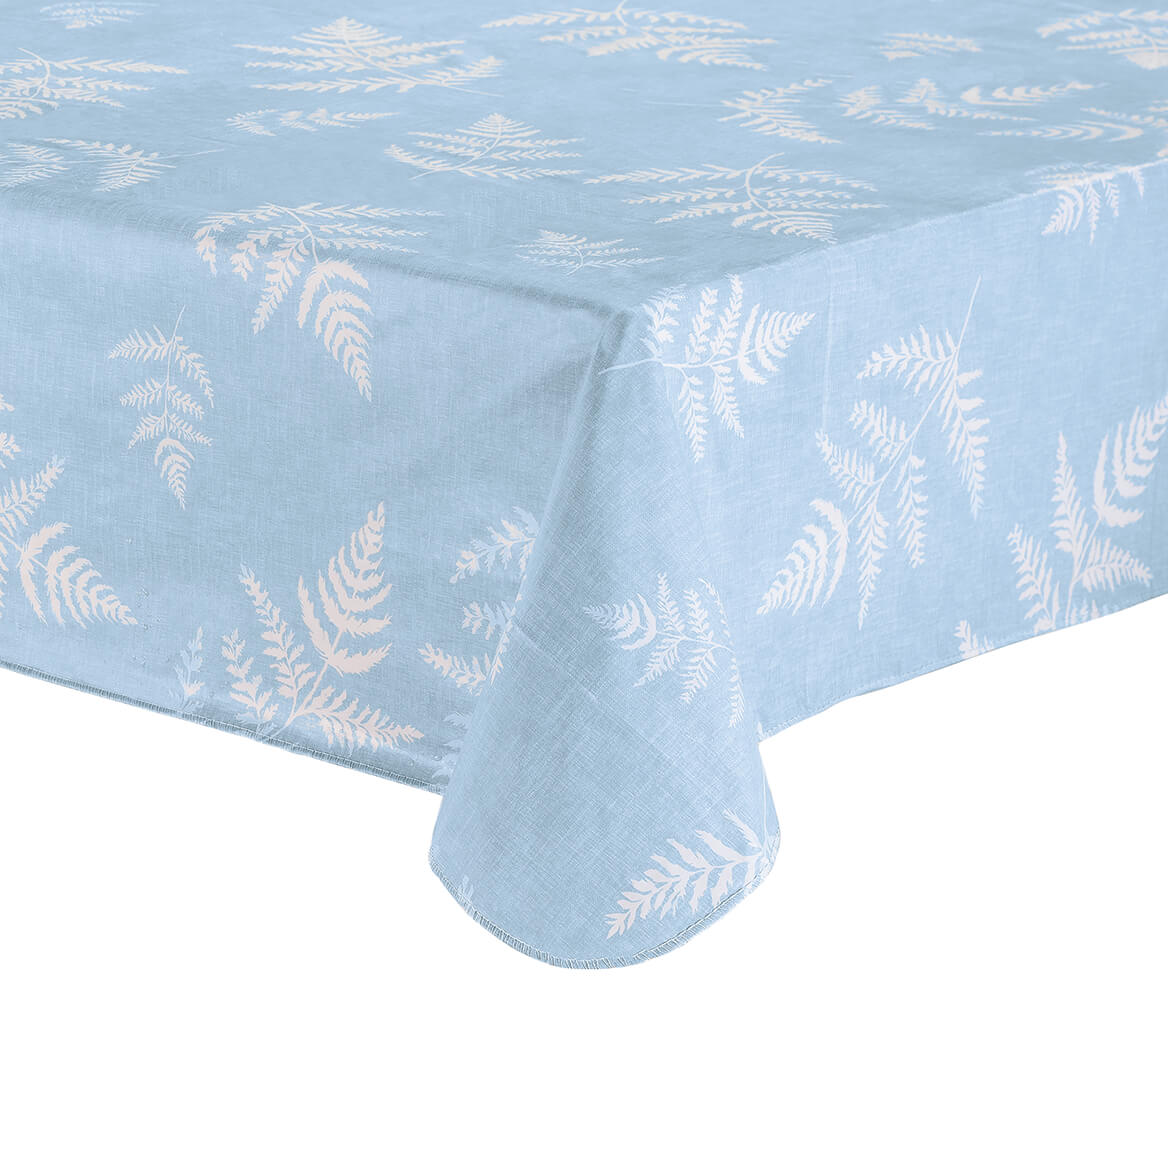 Fern Vinyl Tablecover by Homestyle Kitchen-366988